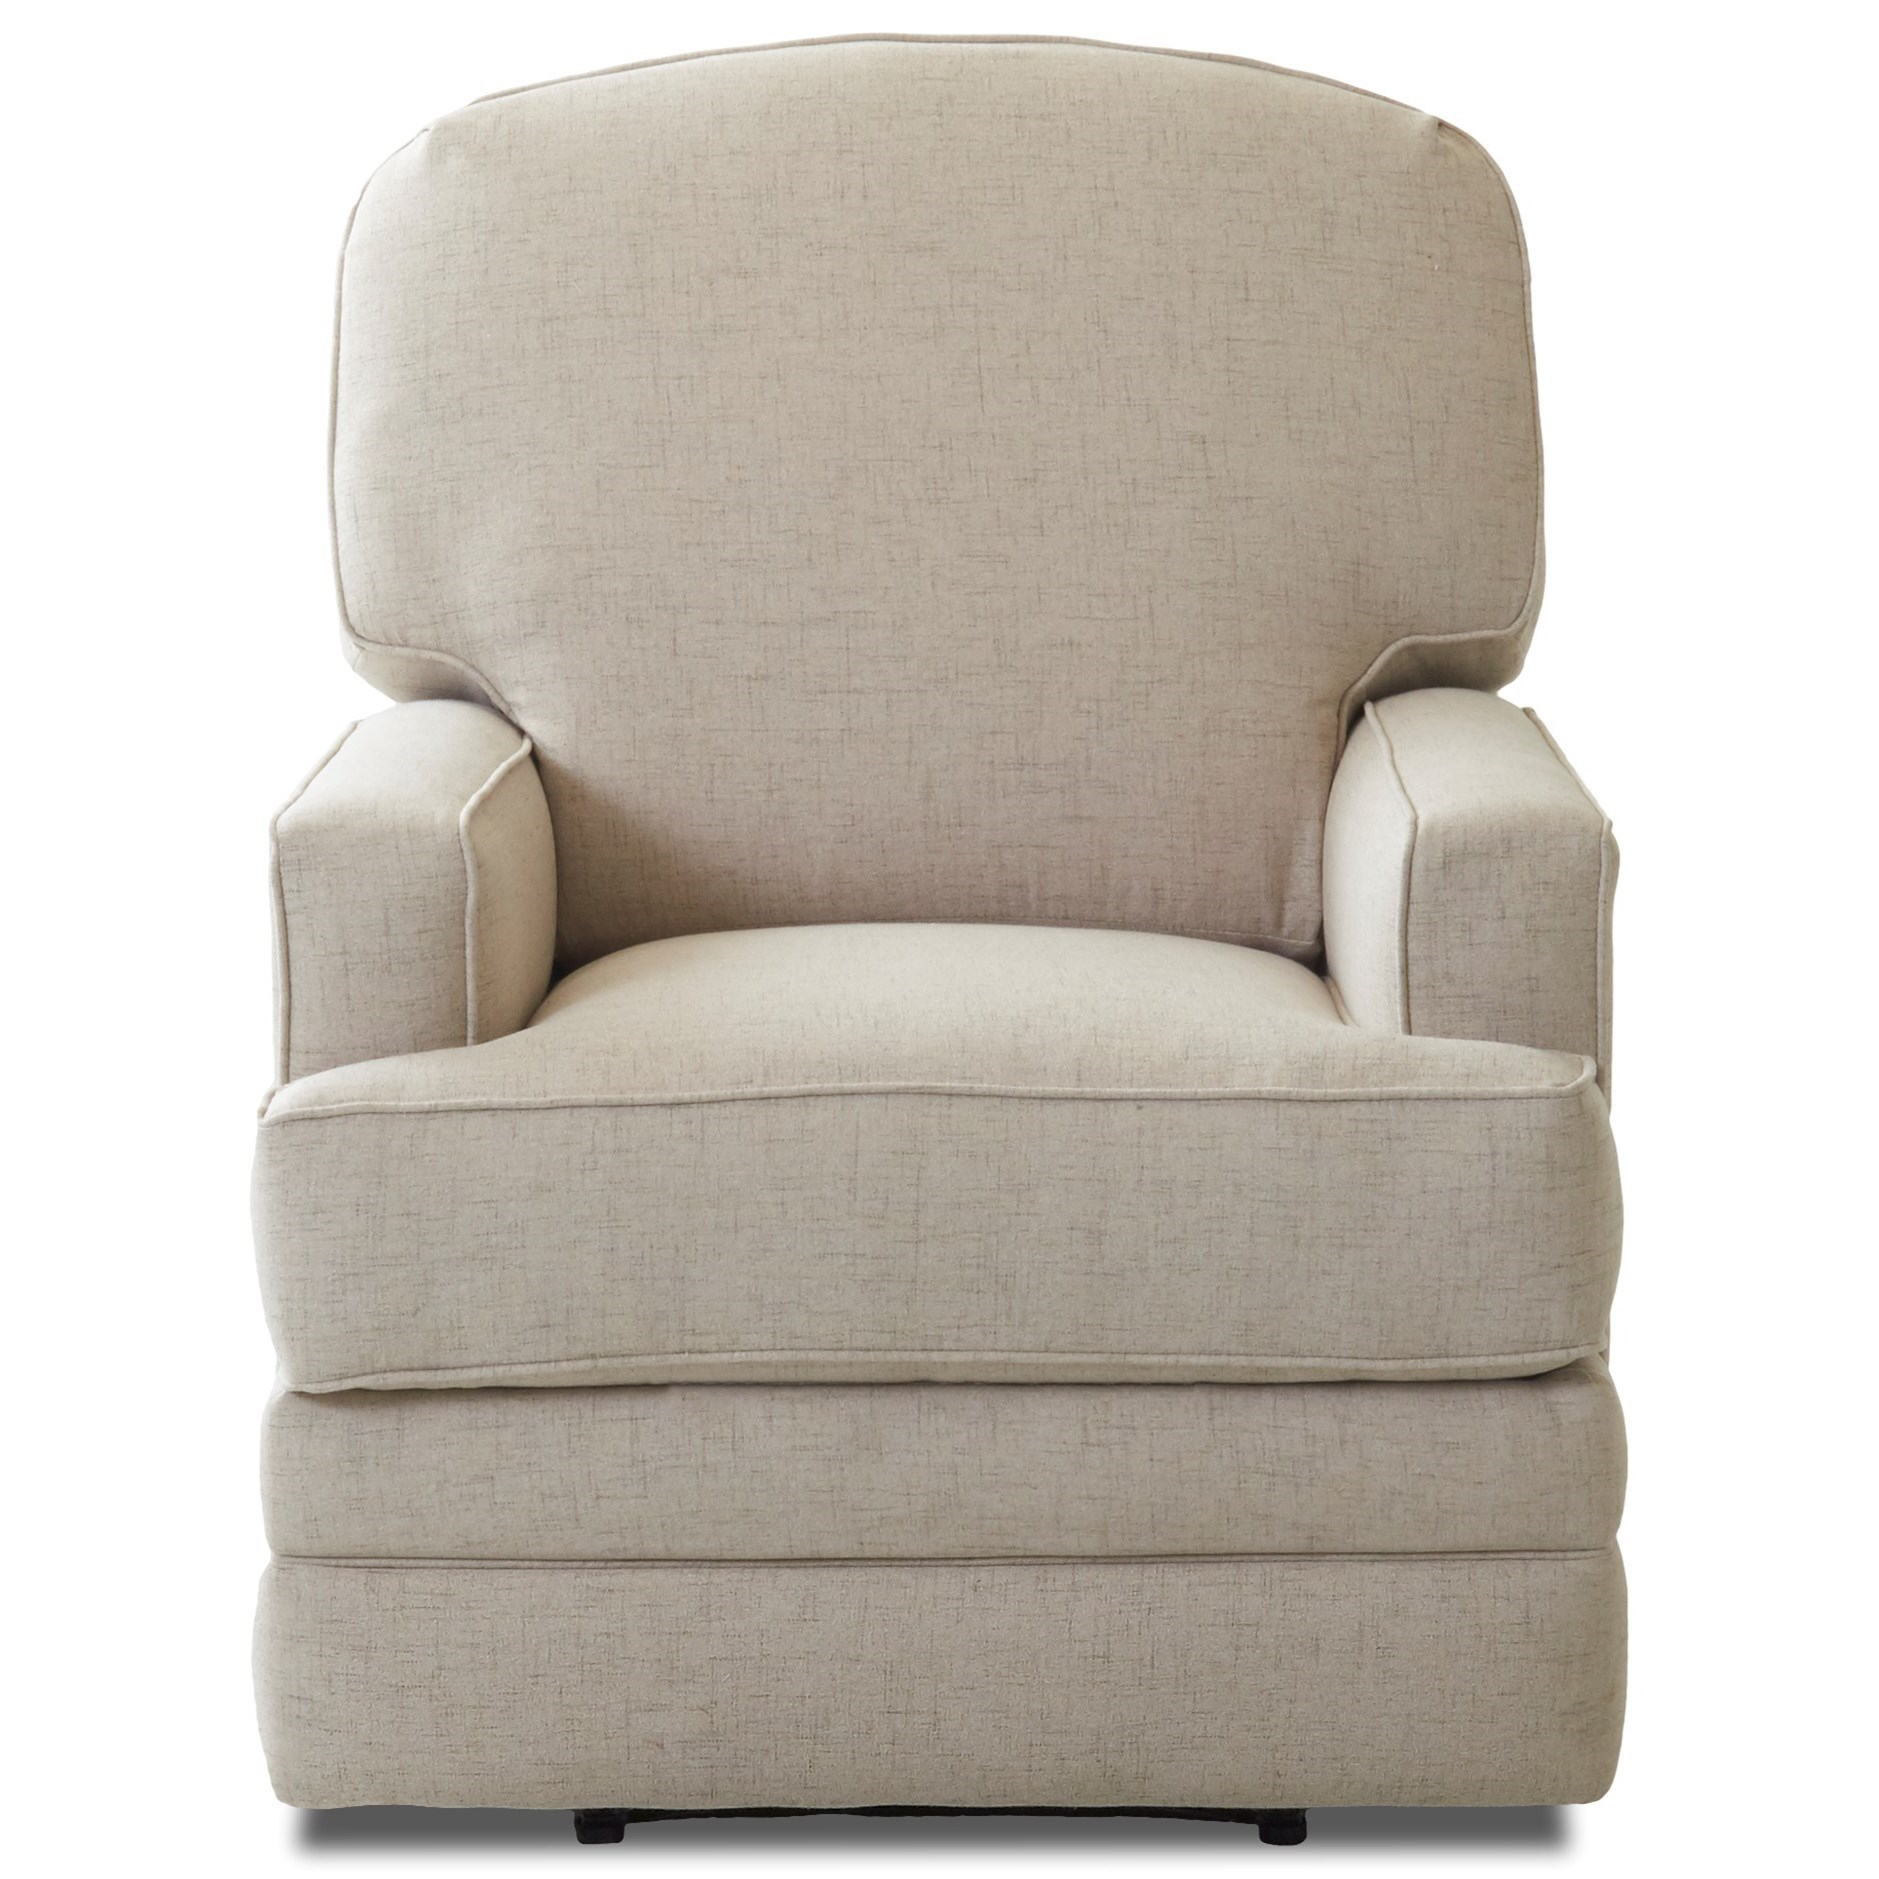 Chapman Casual Swivel Gliding Reclining Chair by Klaussner at Northeast Factory Direct